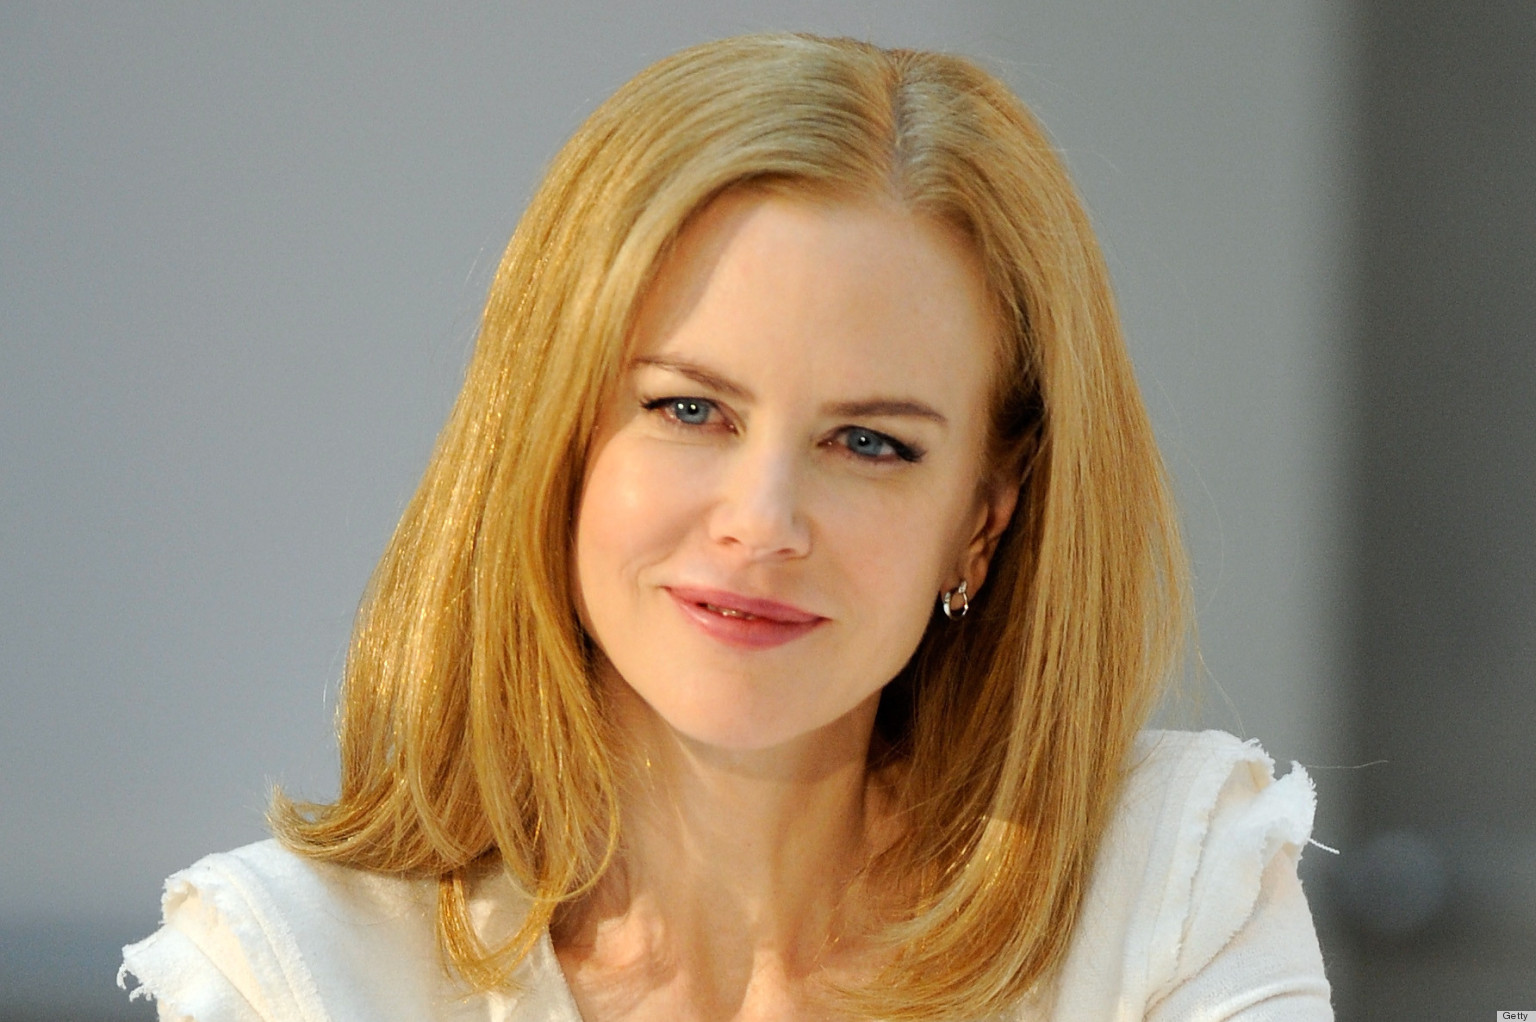 Nicole Kidman Plastic Surgery - Did She Do It Or Not?